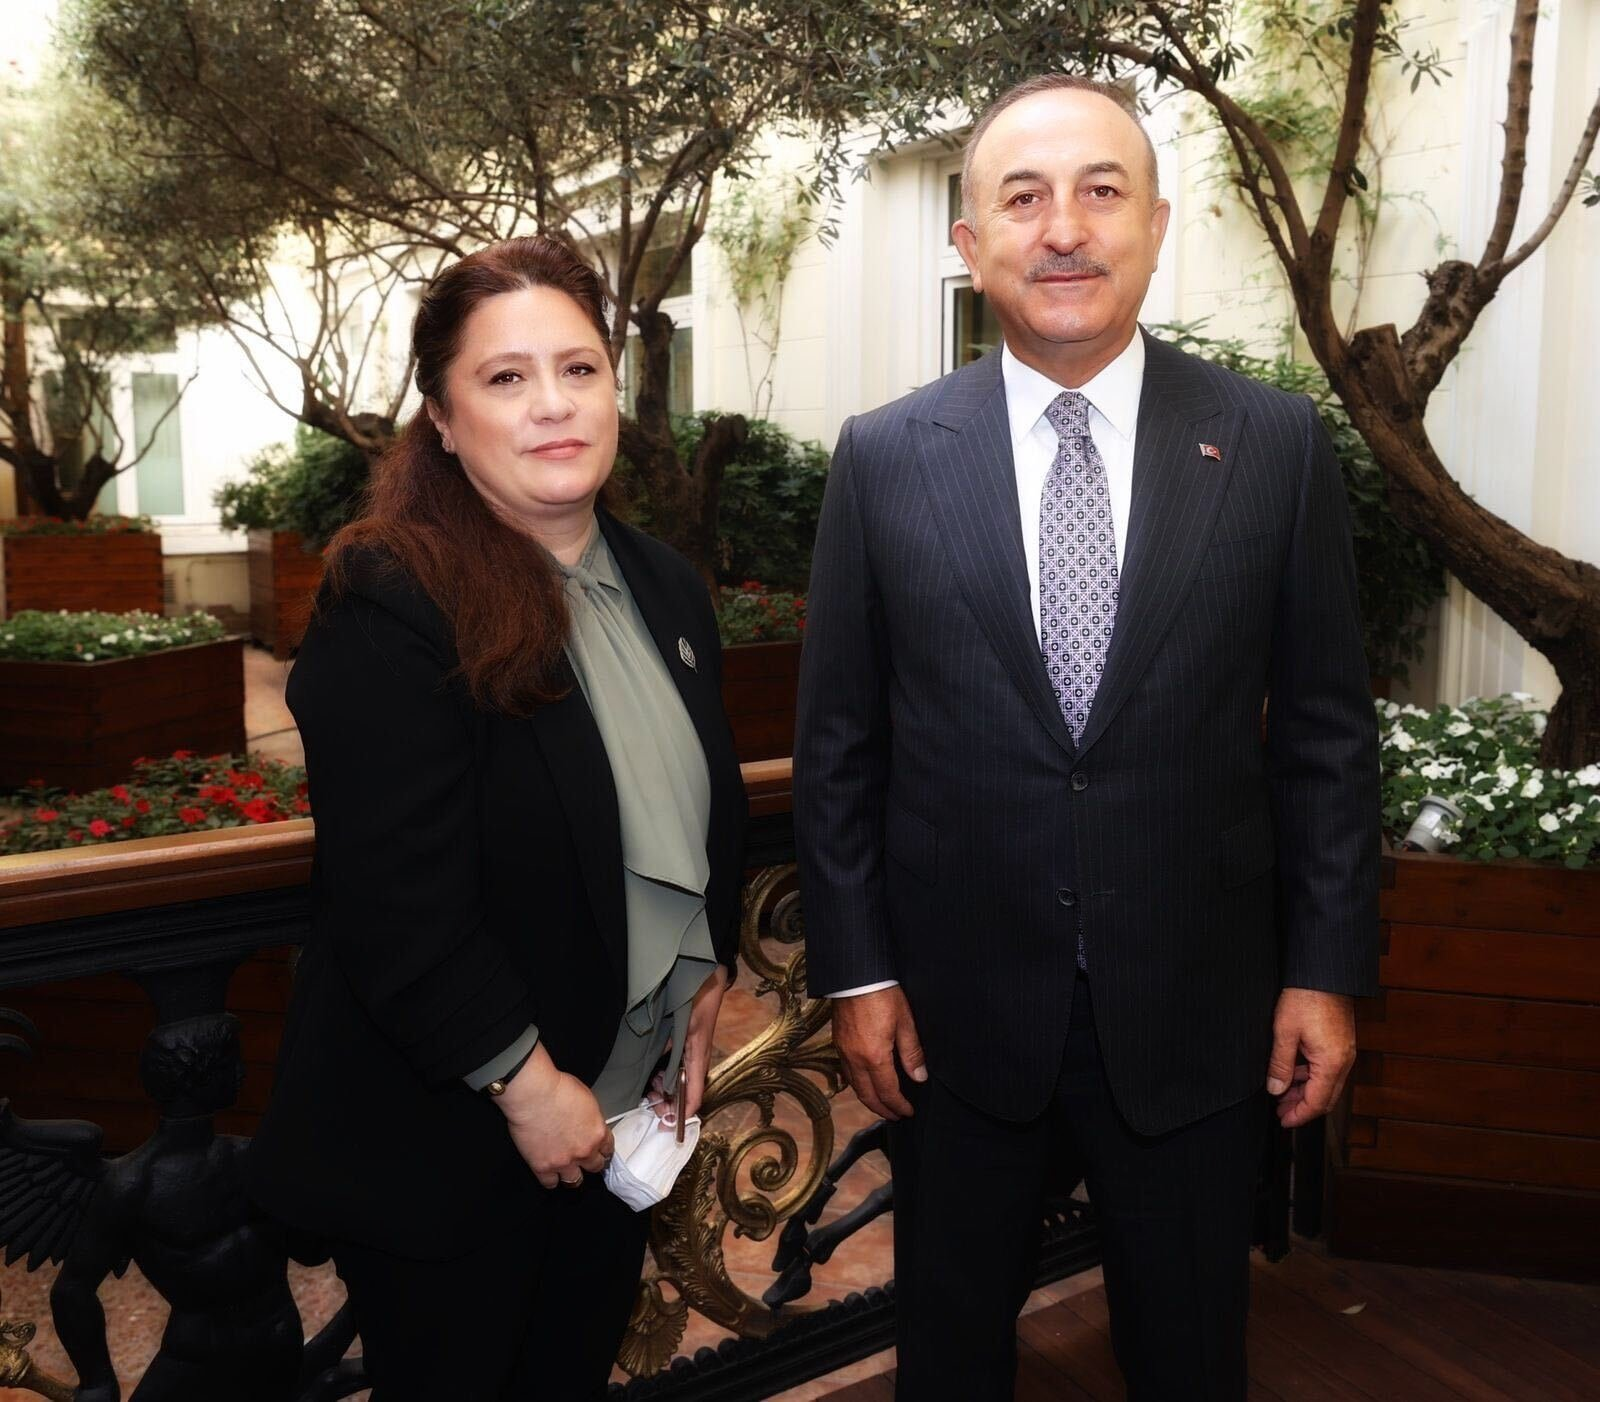 Daily Sabah's Nur Özkan Erbay (L) and Foreign Minister Mevlüt Çavuşoğlu pose for a photo in Athens on May 31, 2021 (DS Photo)